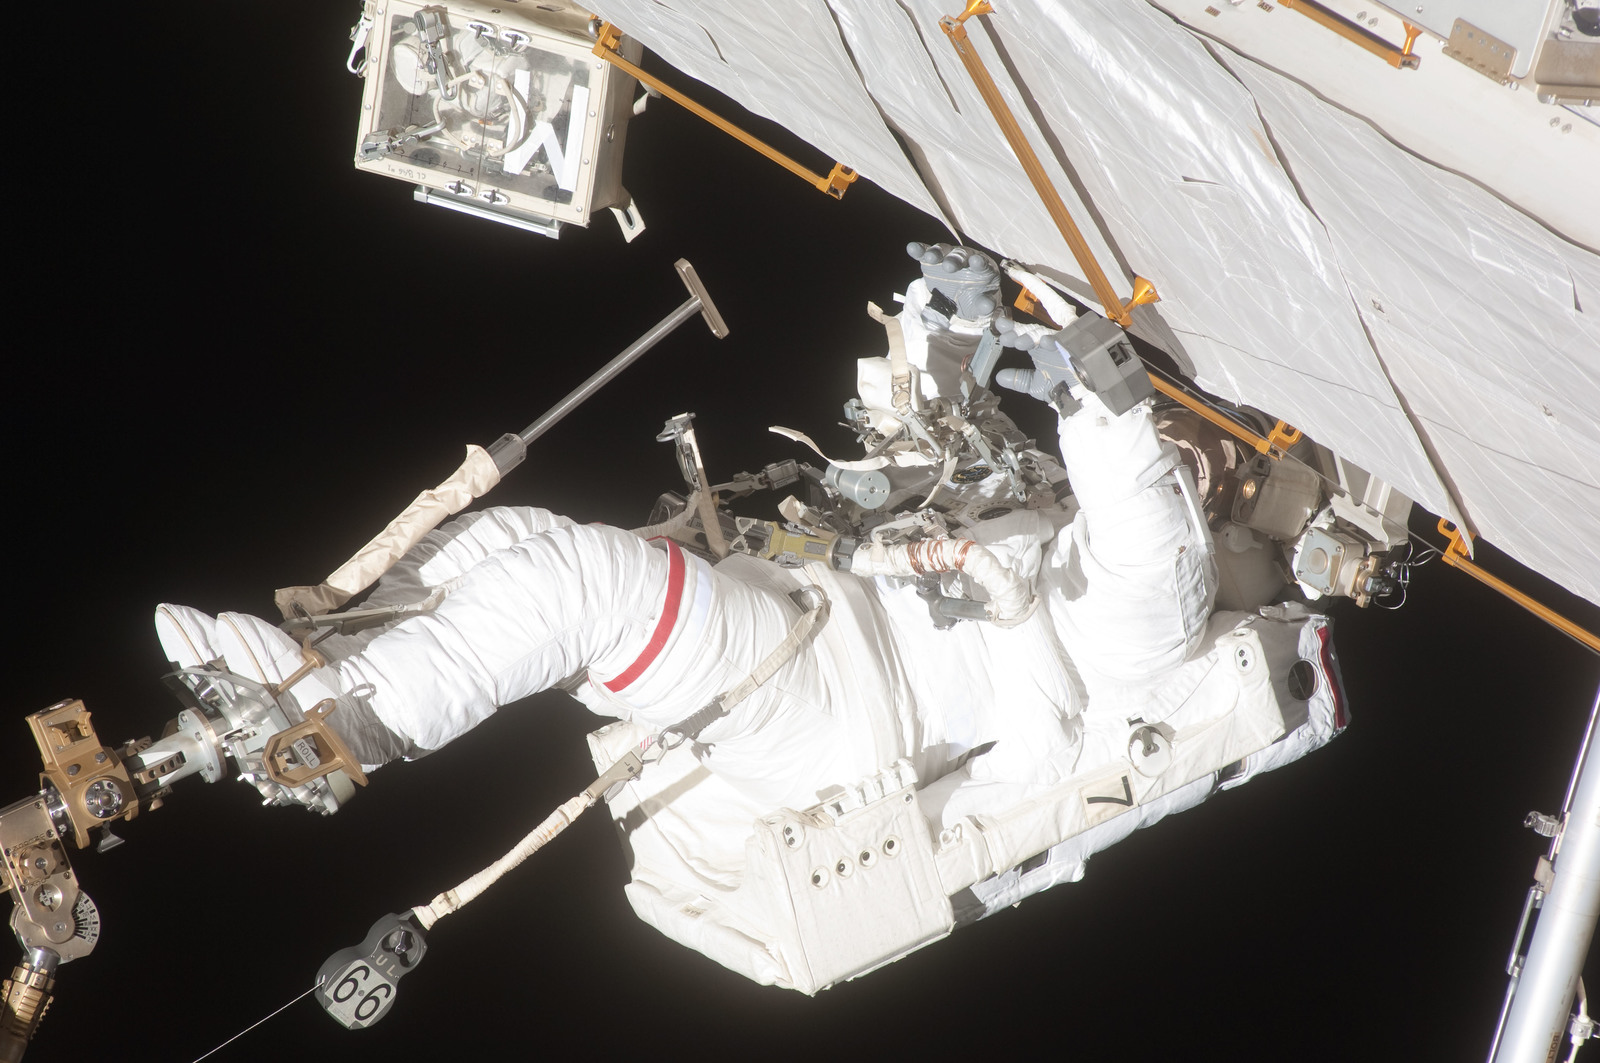 S127E007179 - STS-127 - Wolf during EVA-2 on STS-127 / Expedition 20 Joint Operations